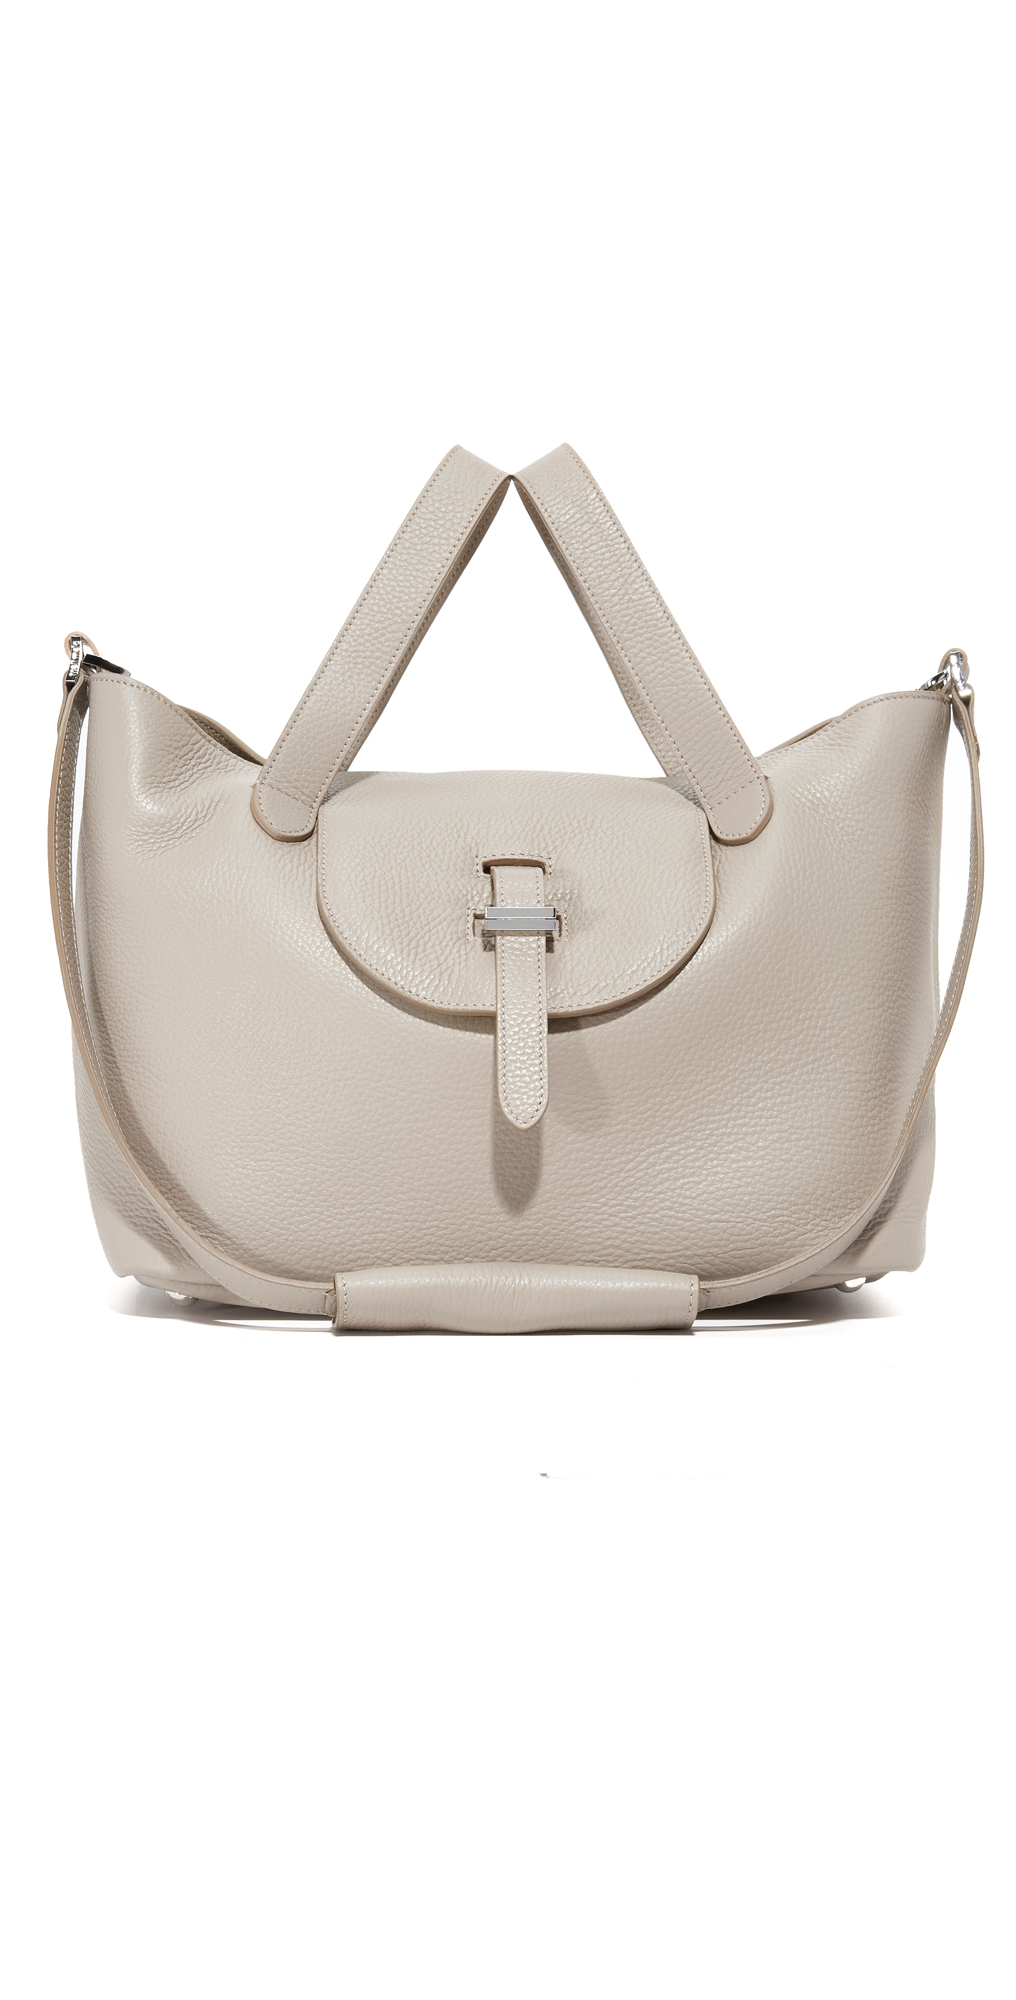 Thela Medium Bag meli melo